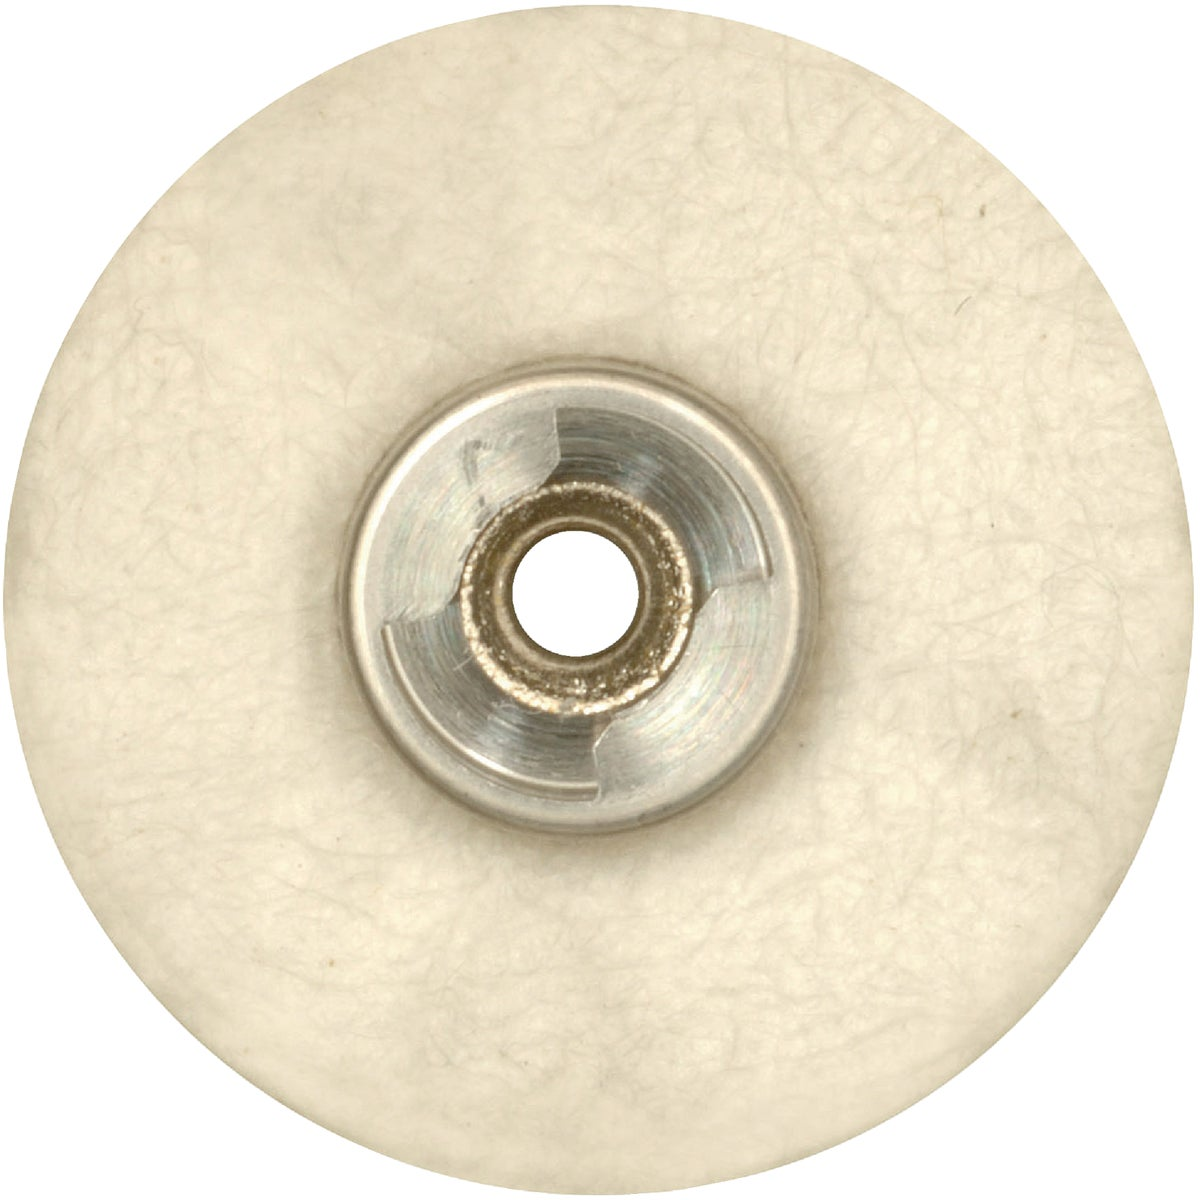 EZ LOCK CLOTH WHEEL - 423E by Dremel Mfg Co